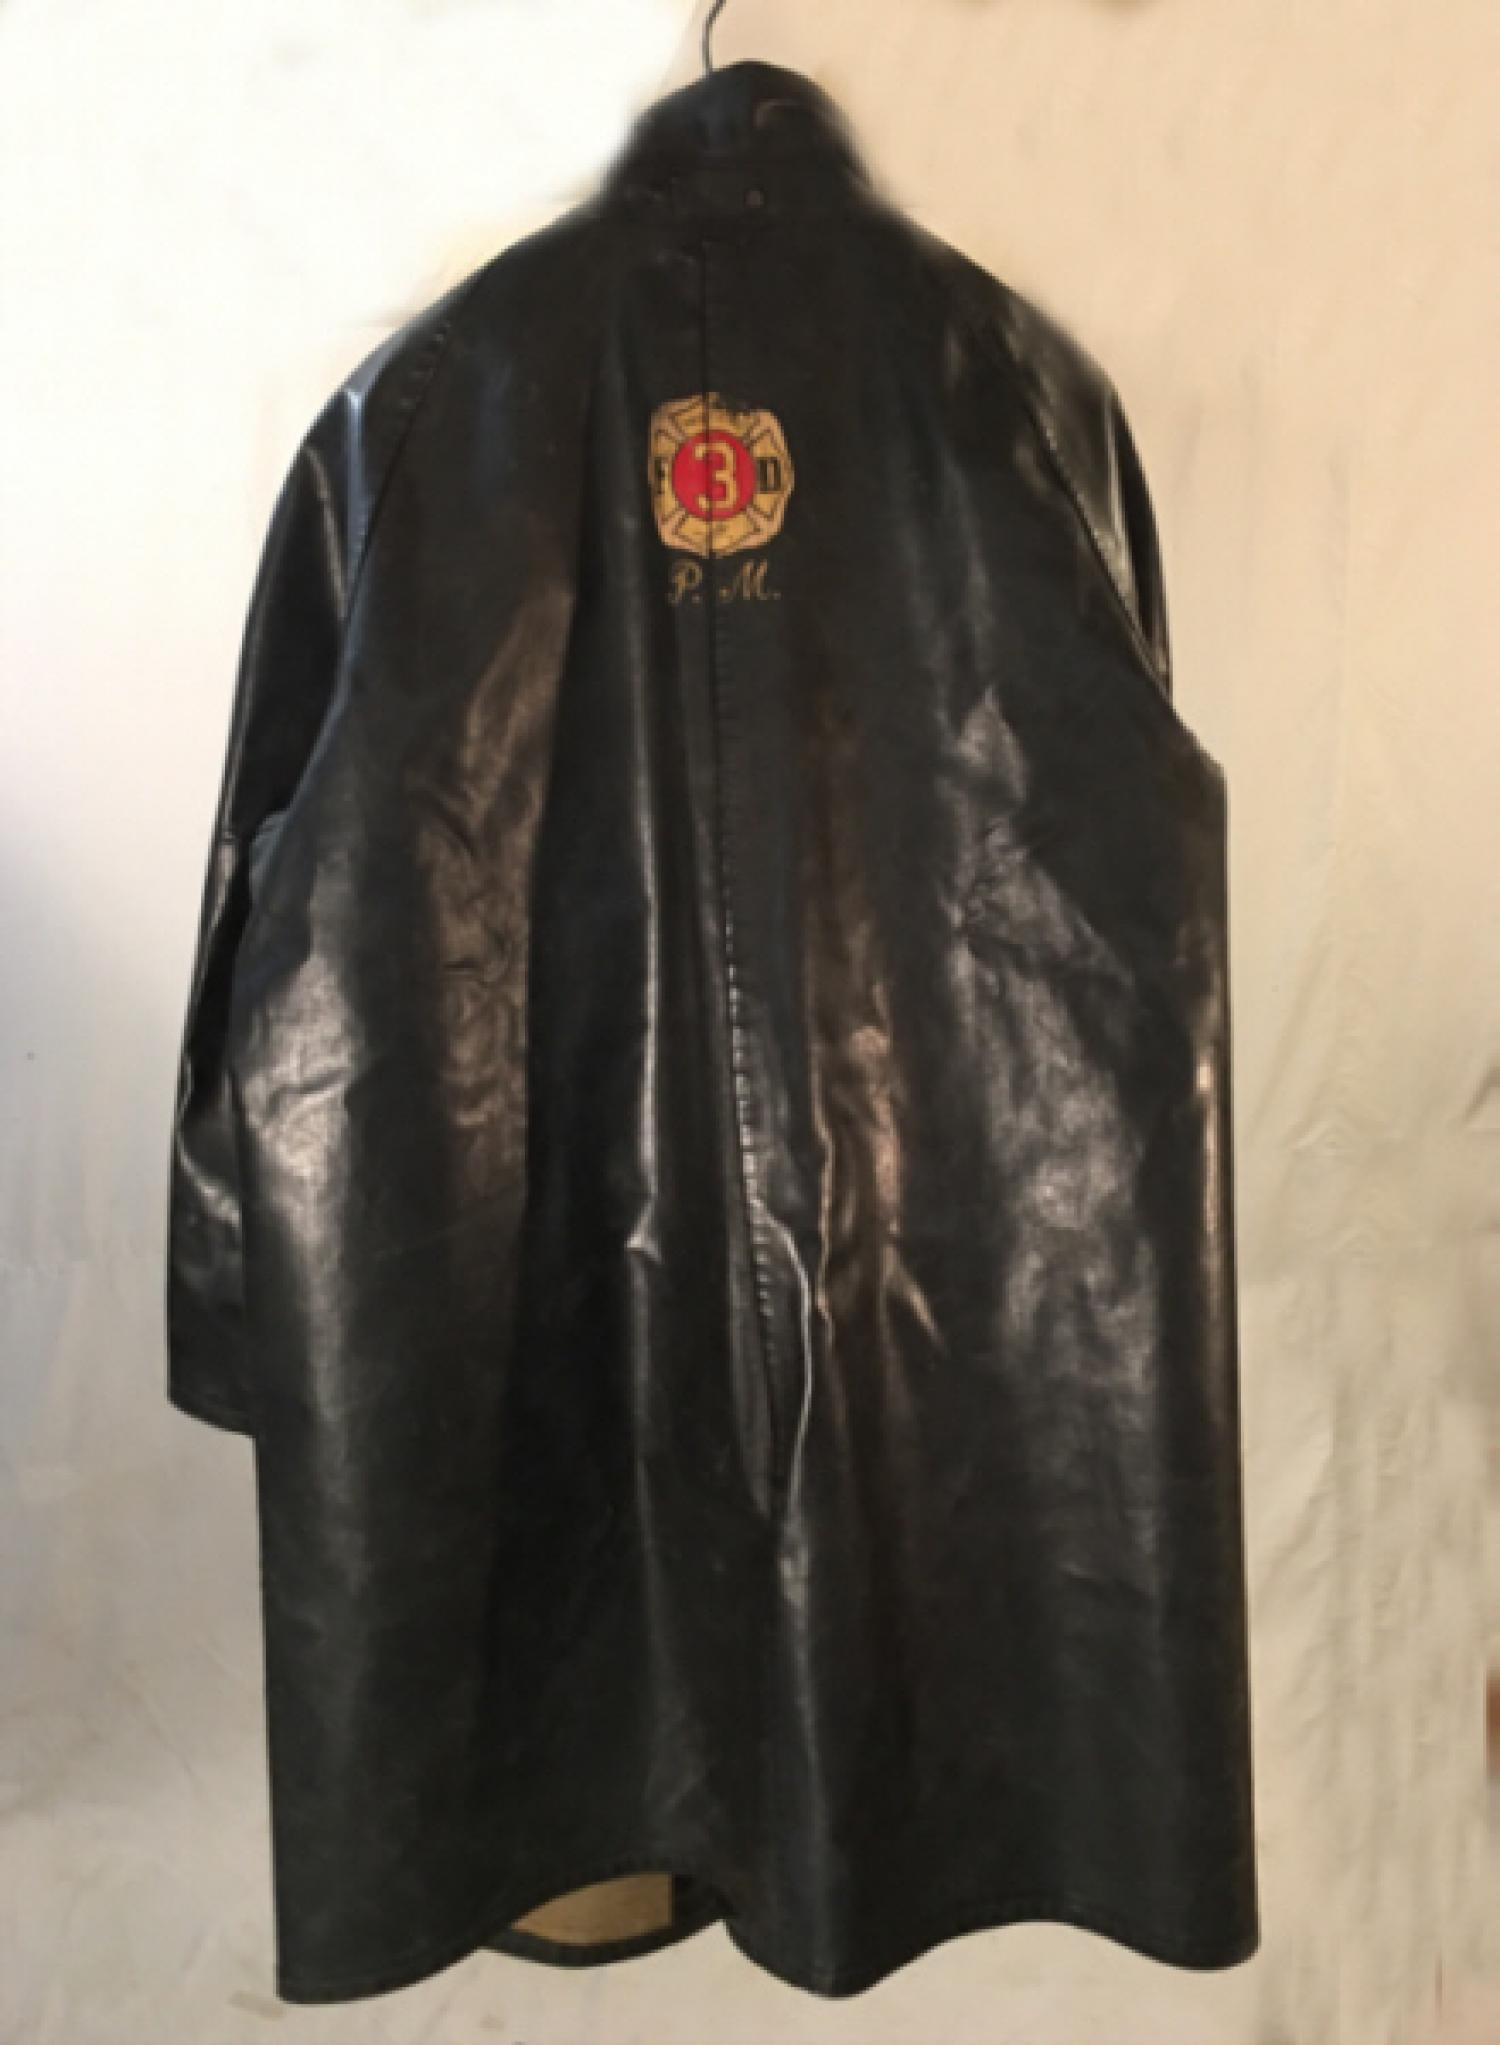 Milford CT Fire Dept leather coat c1940